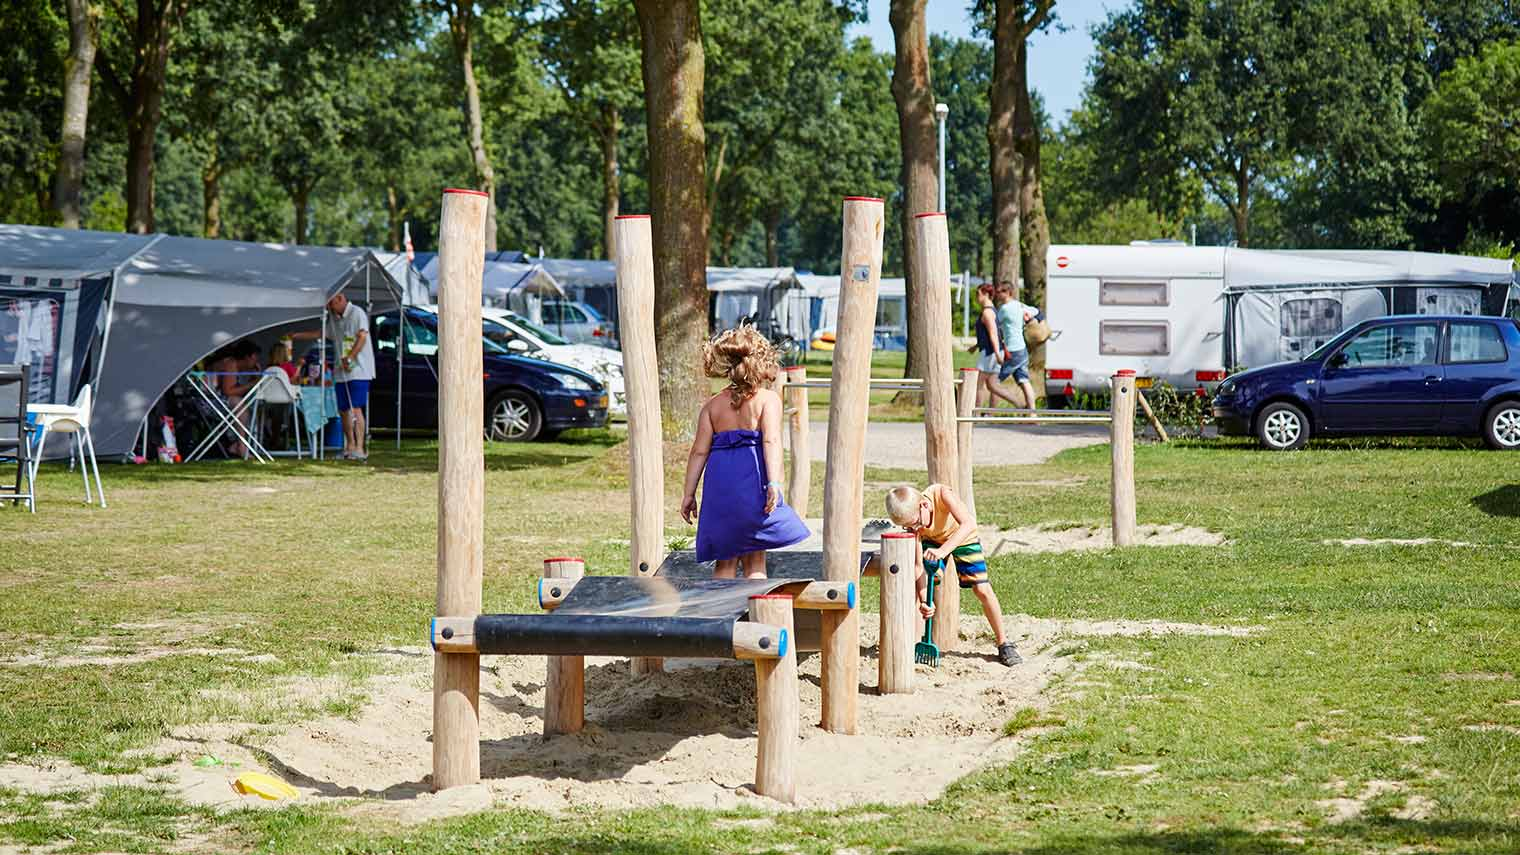 populaire campings nederland